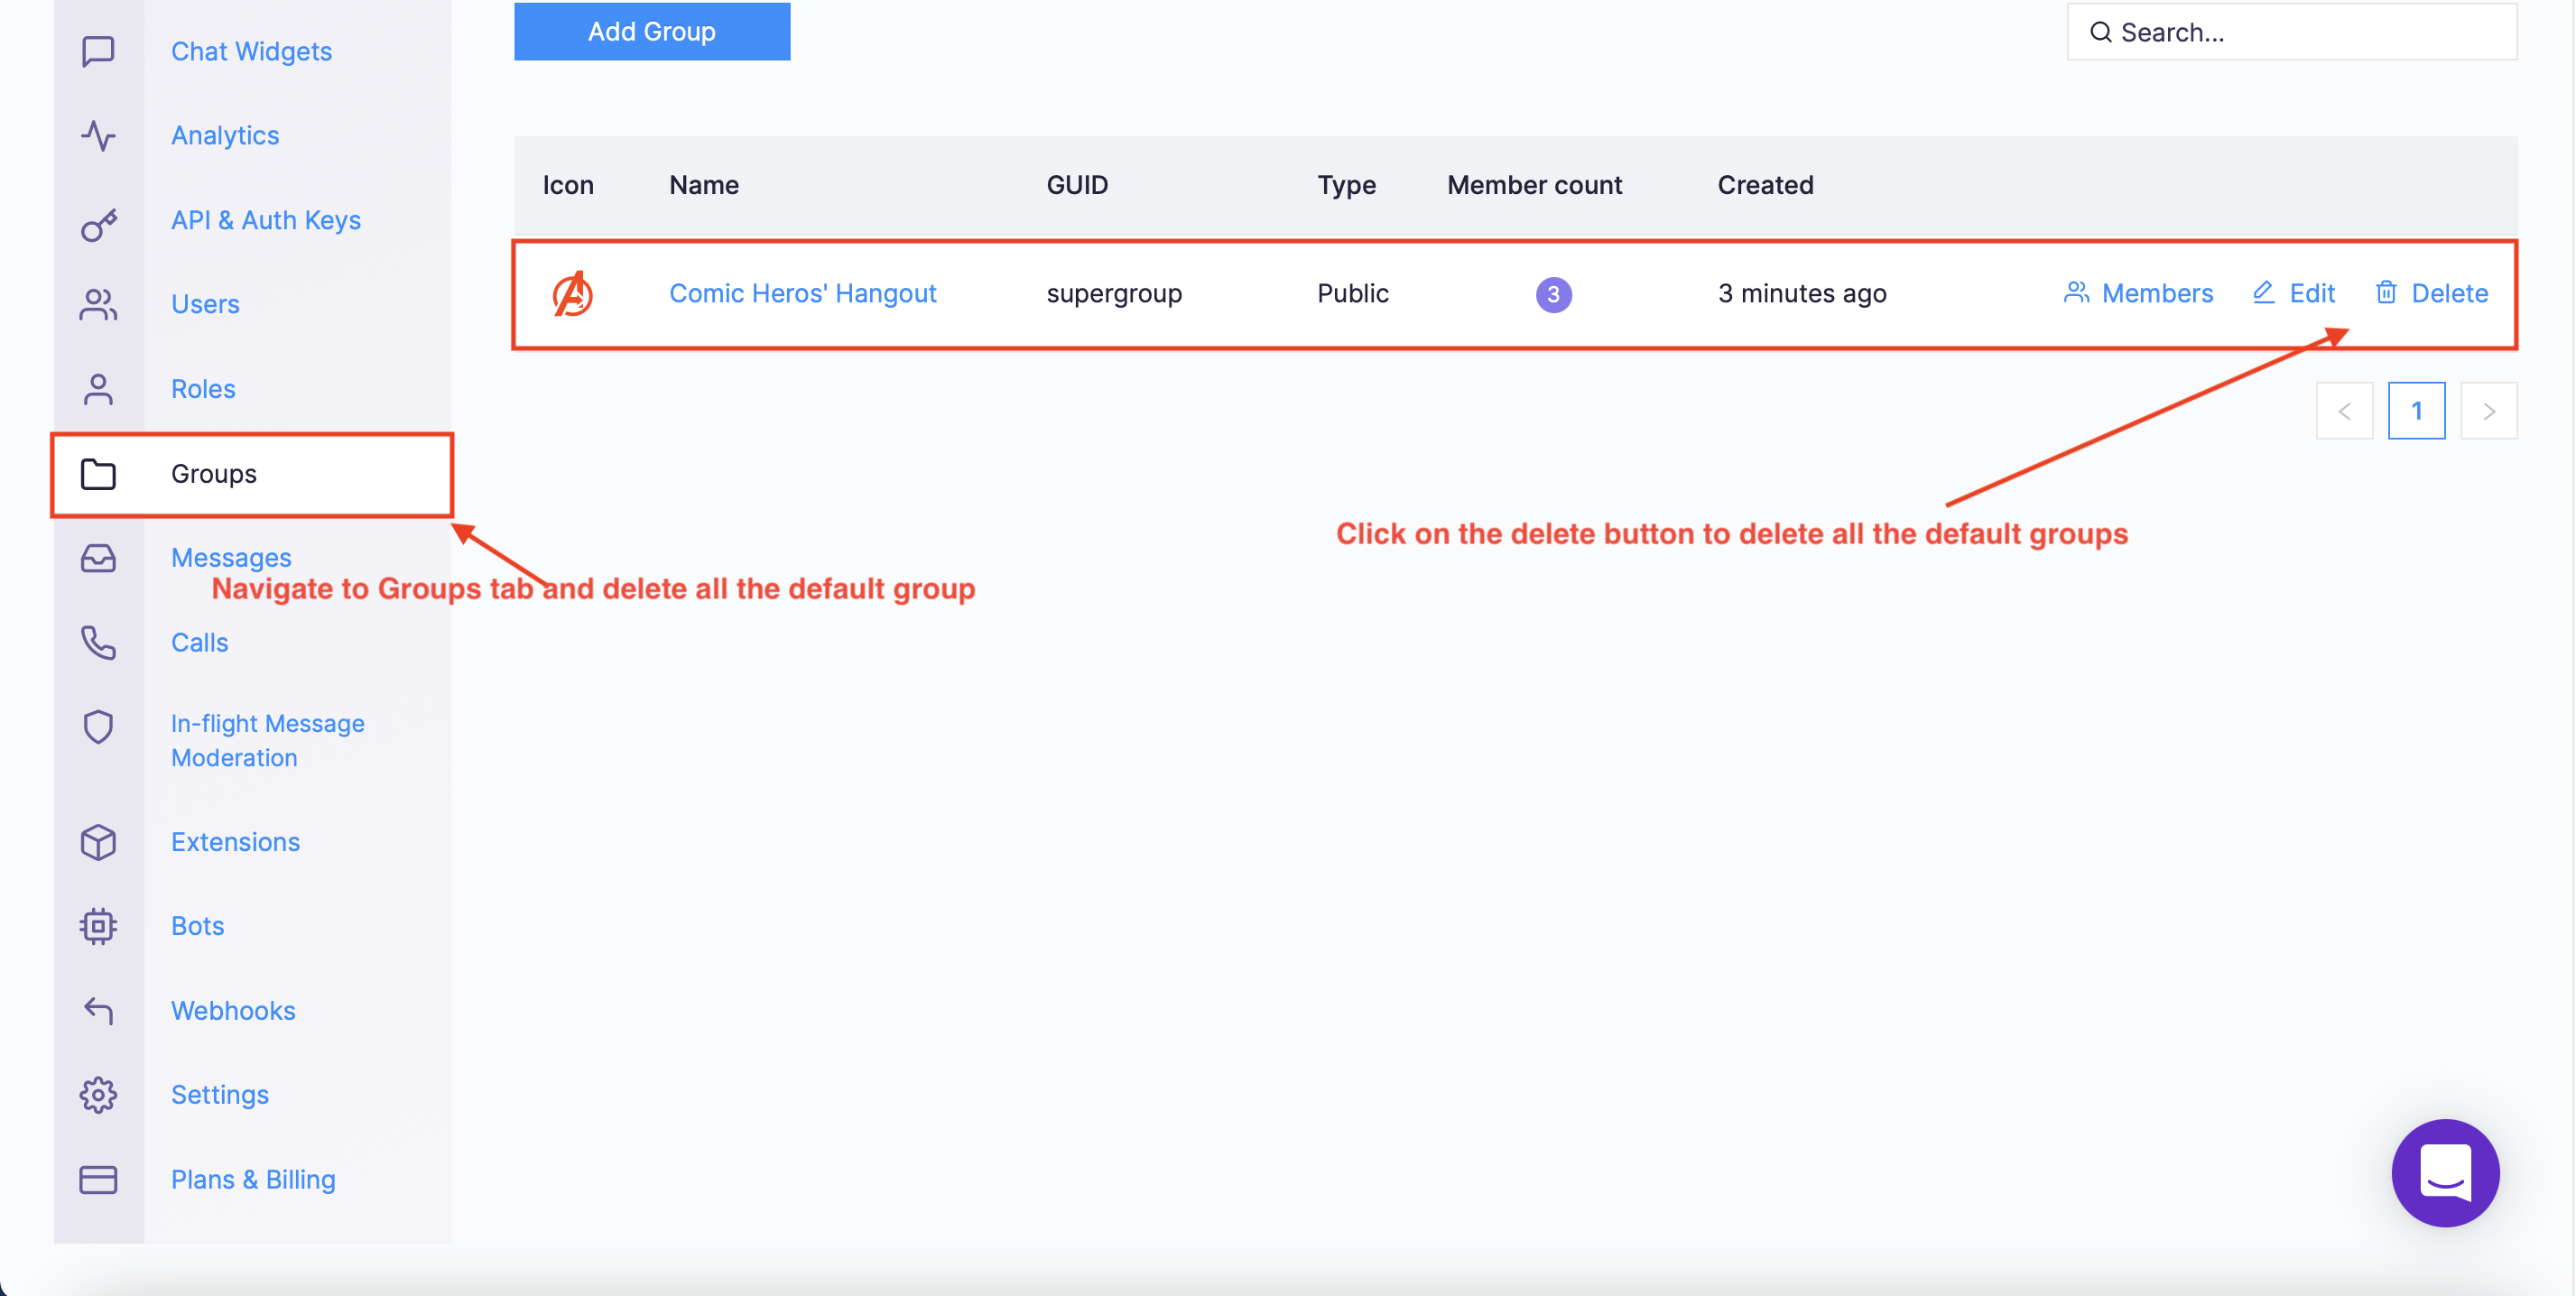 Navigate to Group tab and delete all the default groups